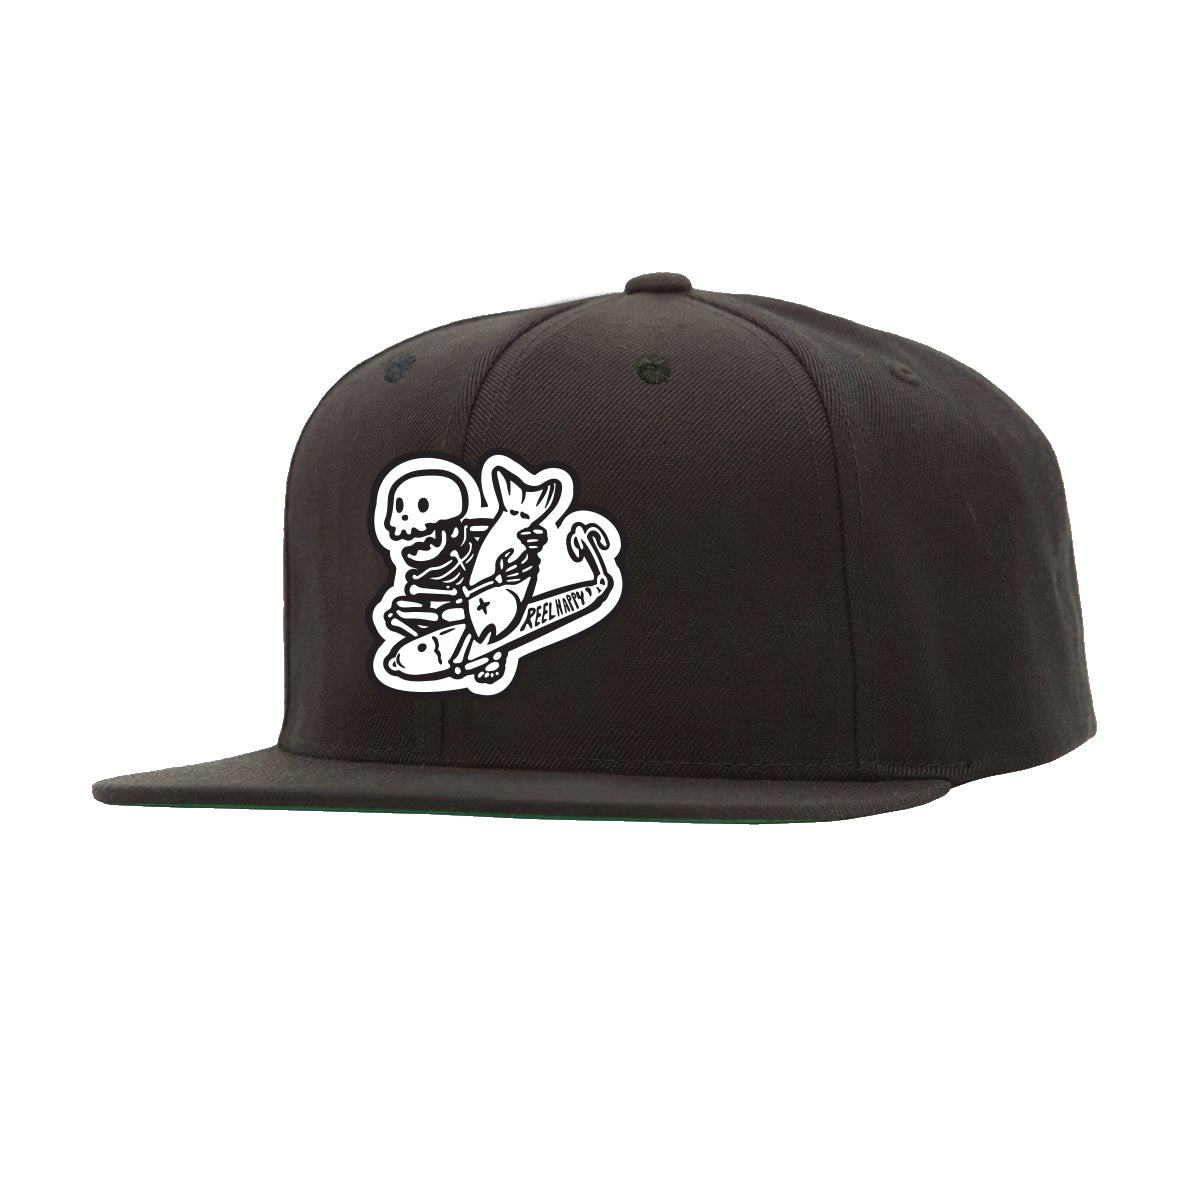 Dropping Bombs Snapback - Black - Reel Happy Co